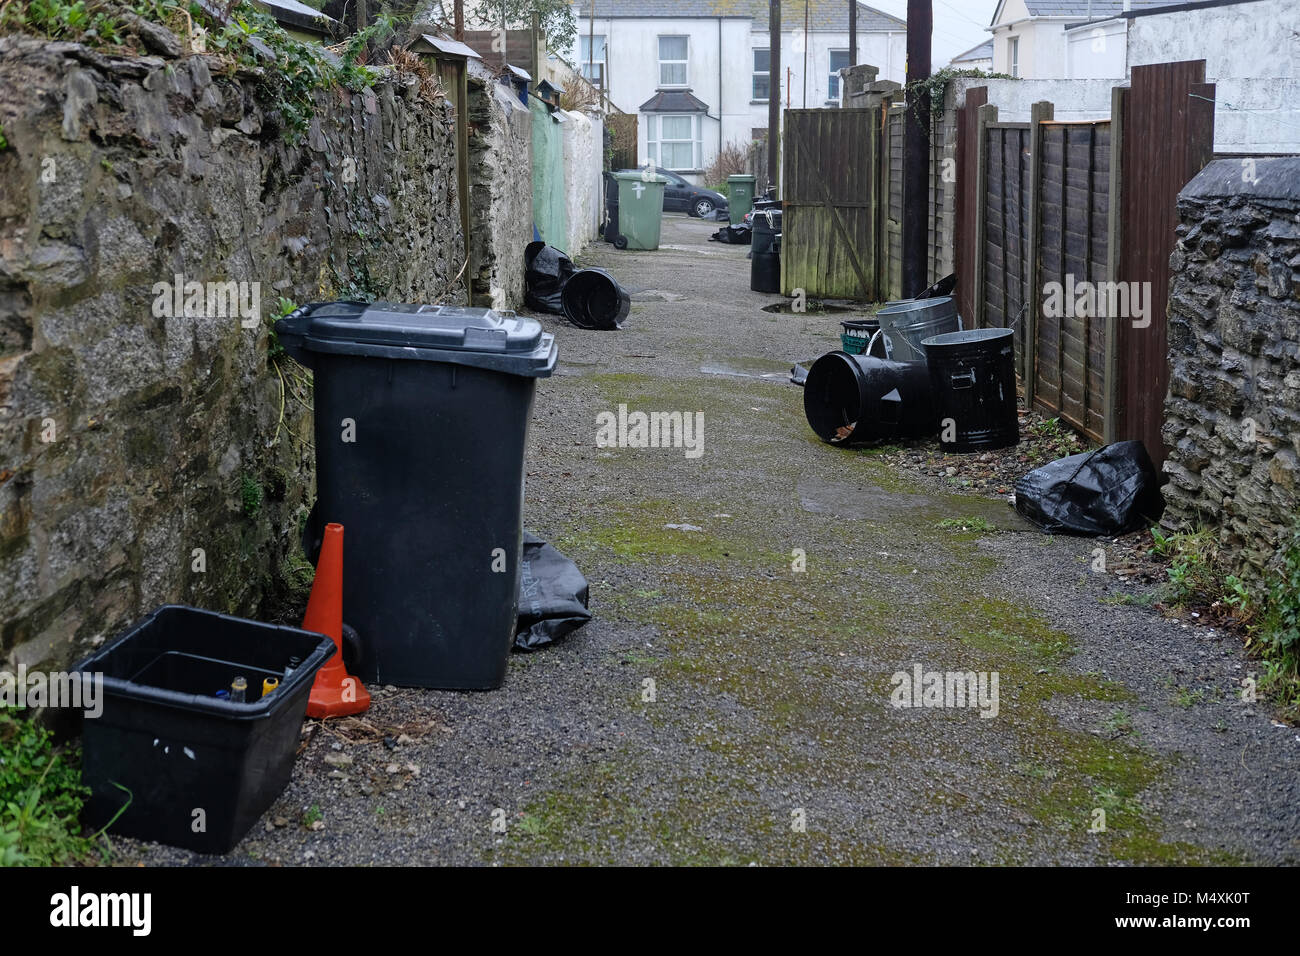 Rubbish bins on a backstreet in Falmouth, Cornwall. - Stock Image